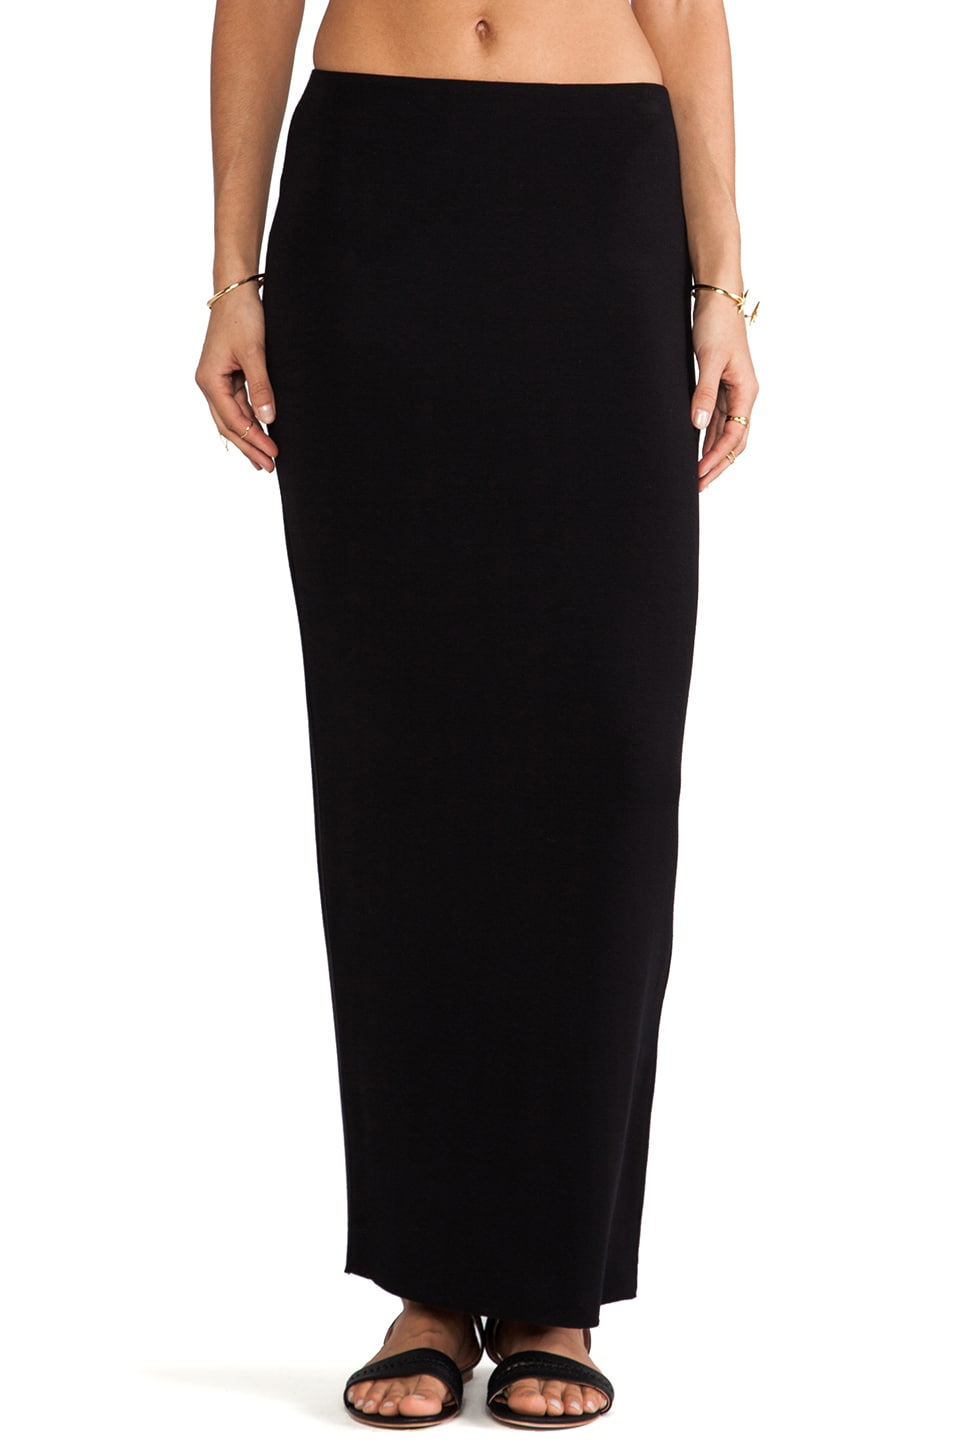 Bailey 44 Masakela Skirt in Black